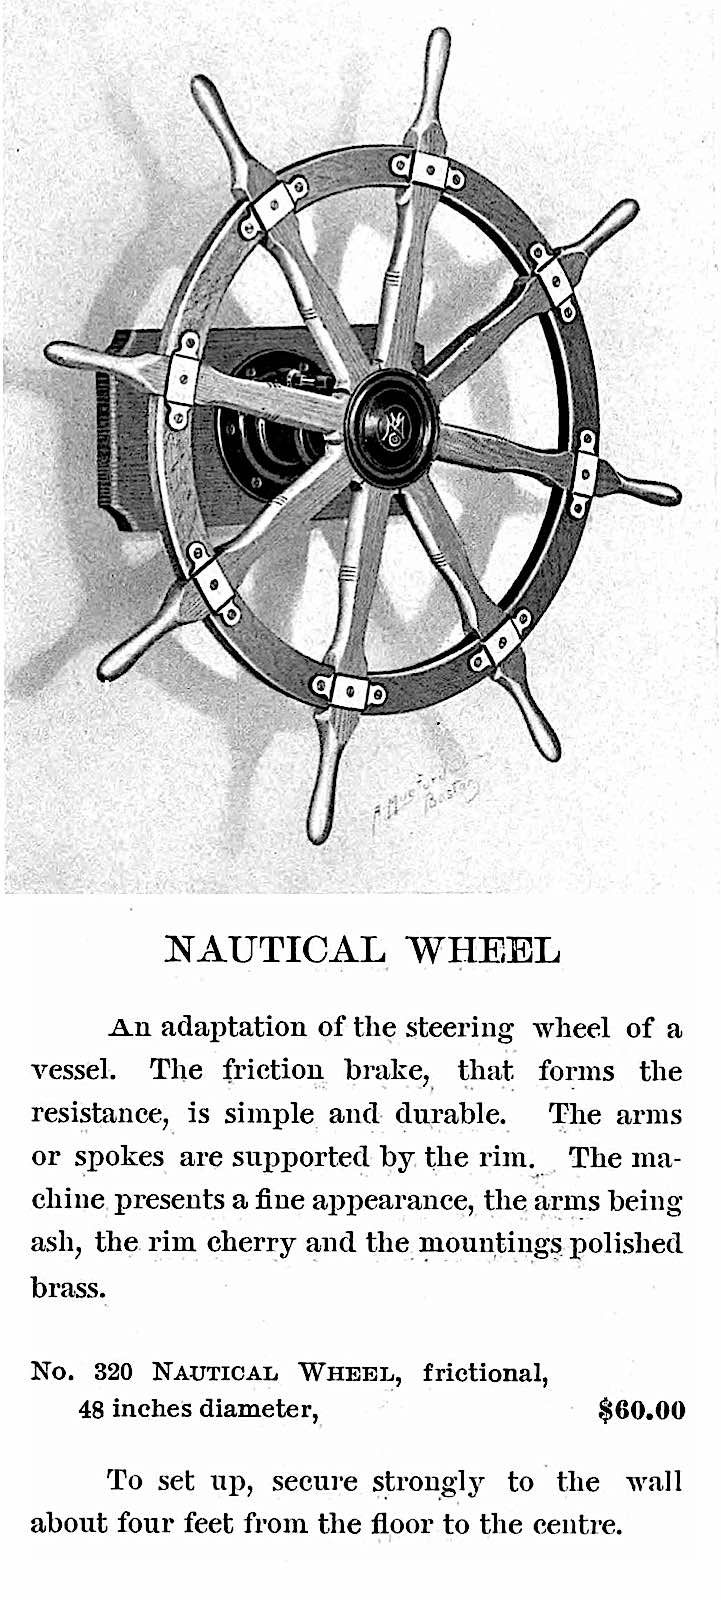 1905 excercise wheel, the nautical wheel, an illustrated advertisement